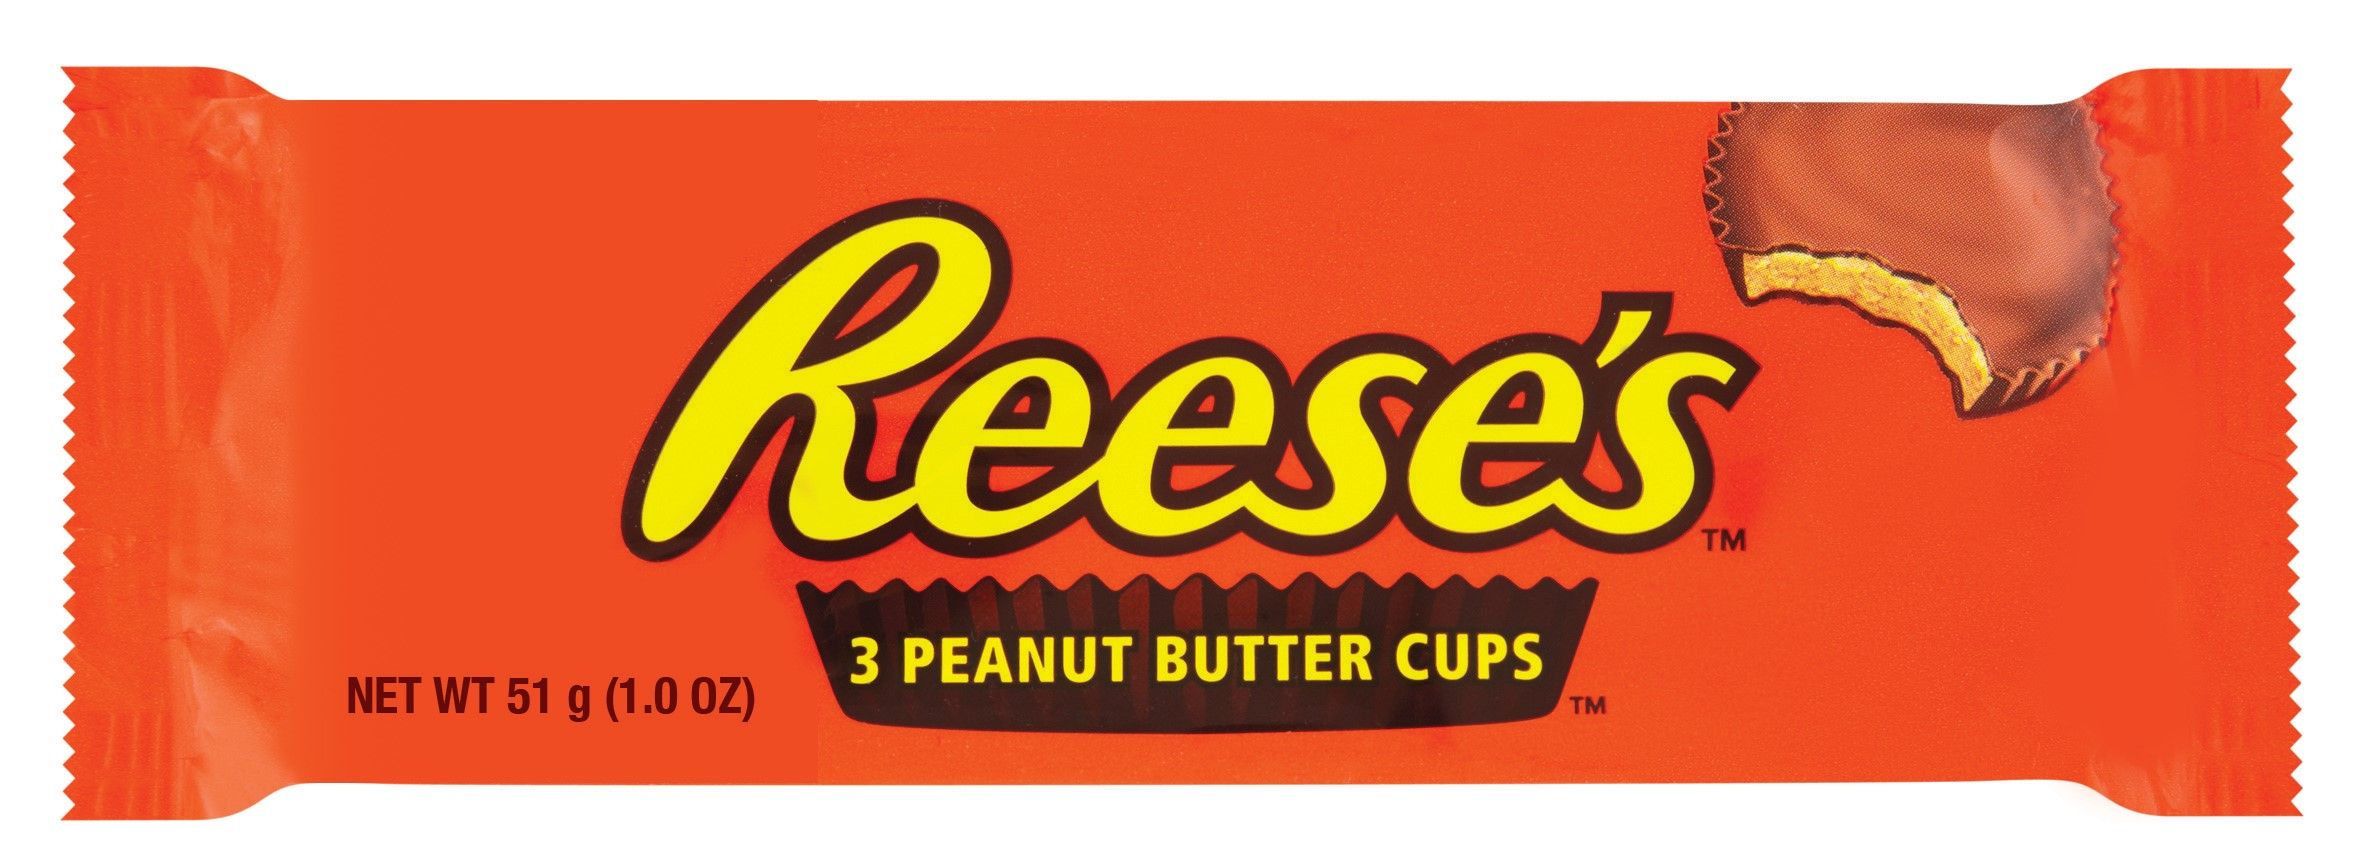 Wholesale Reese S Peanut Butter Cups 3 Pack Hancocks